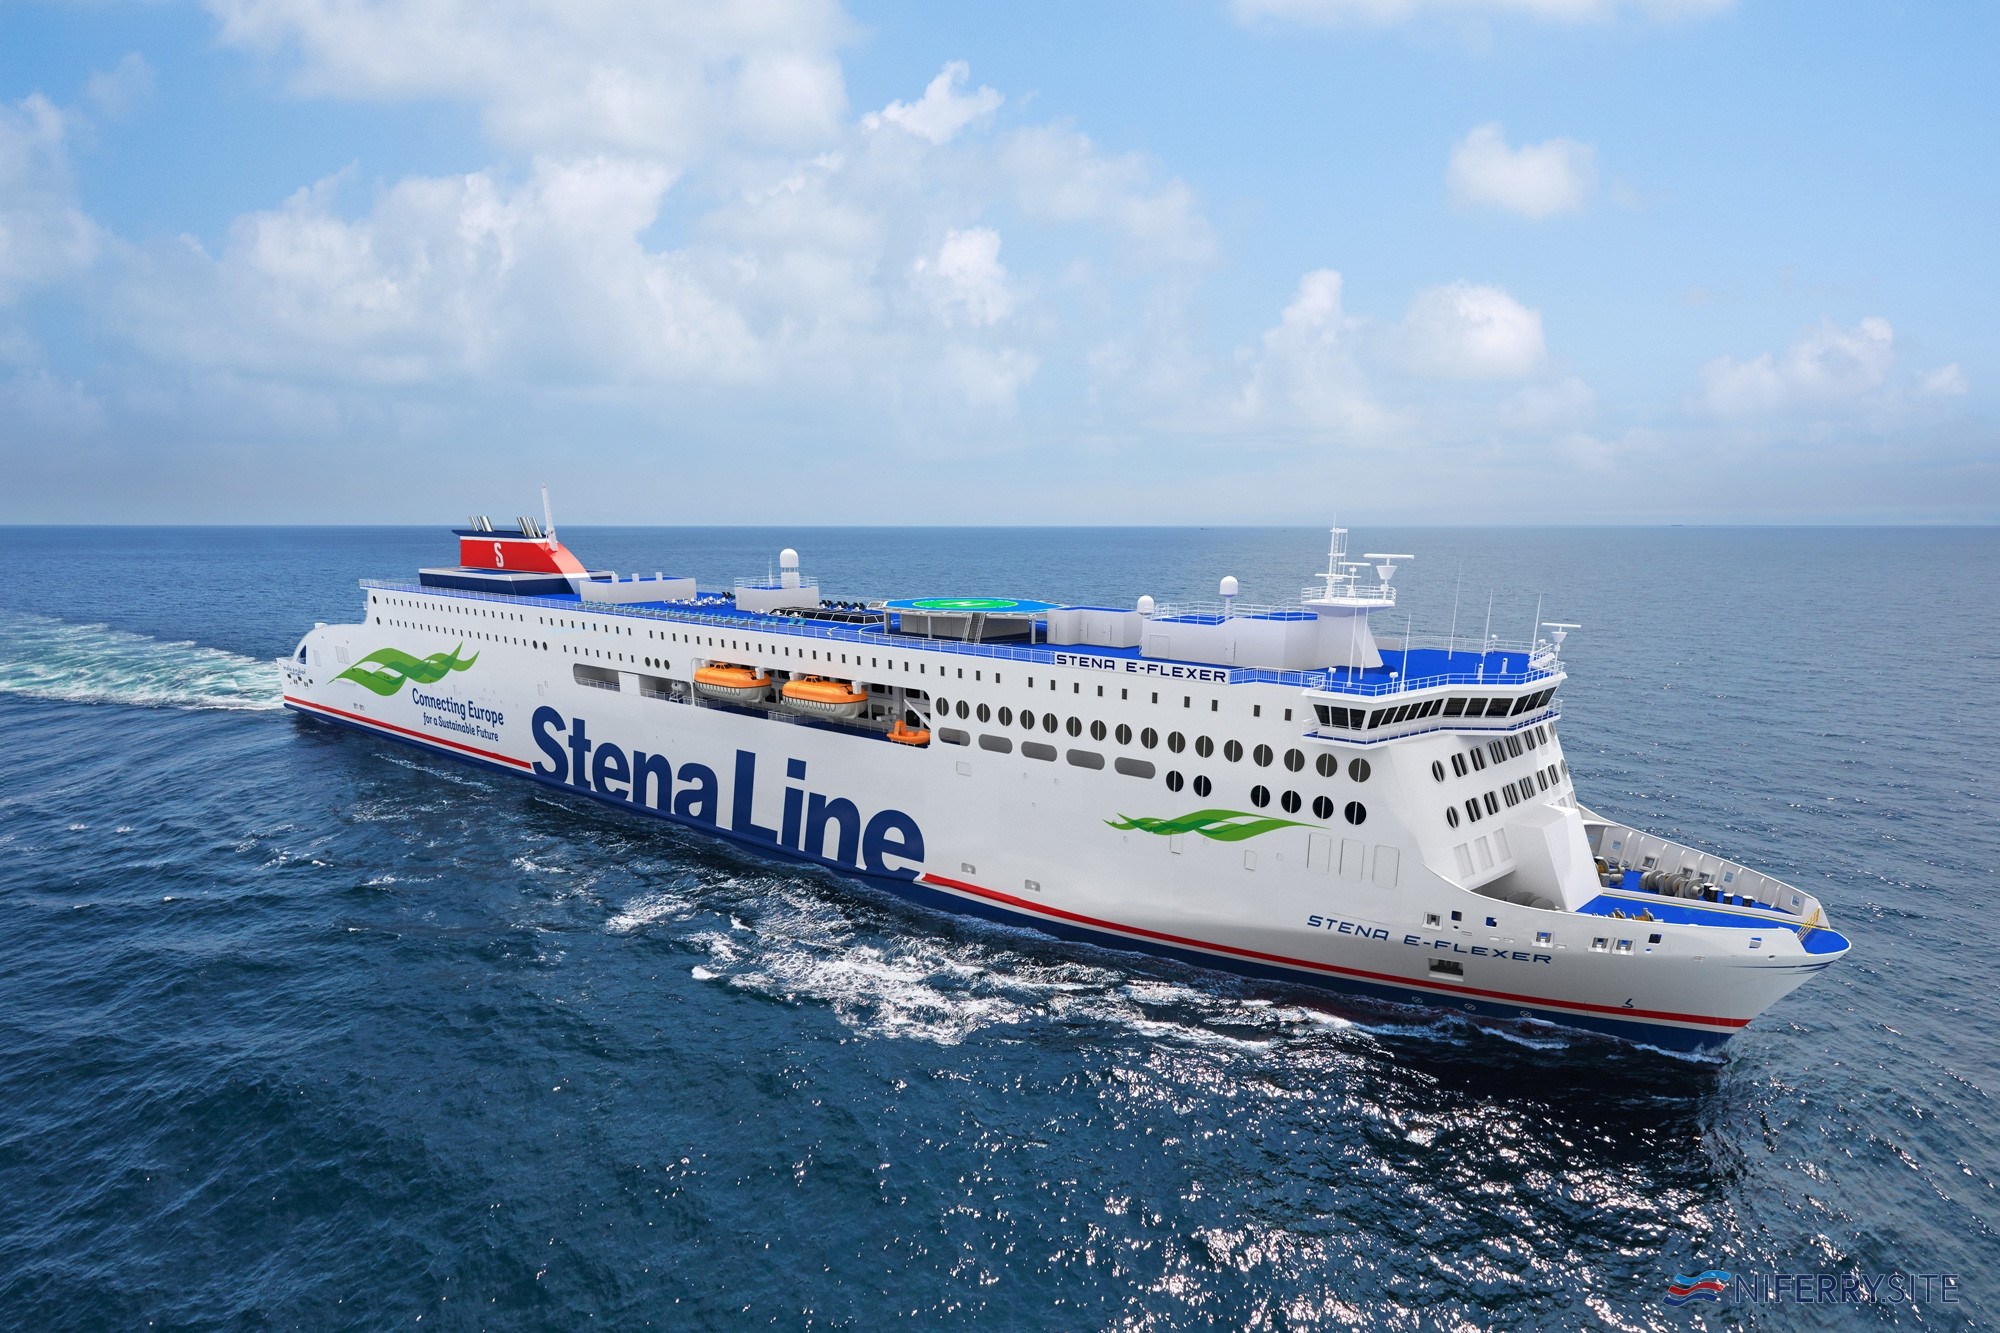 Construction of the two longer Stena Line ferries began with a steel cutting ceremony for the two vessels on April 2 and May 29 this year on site in Weihai, China. Due to COVID-19, only site teams were present. Mild Design / Stena Line